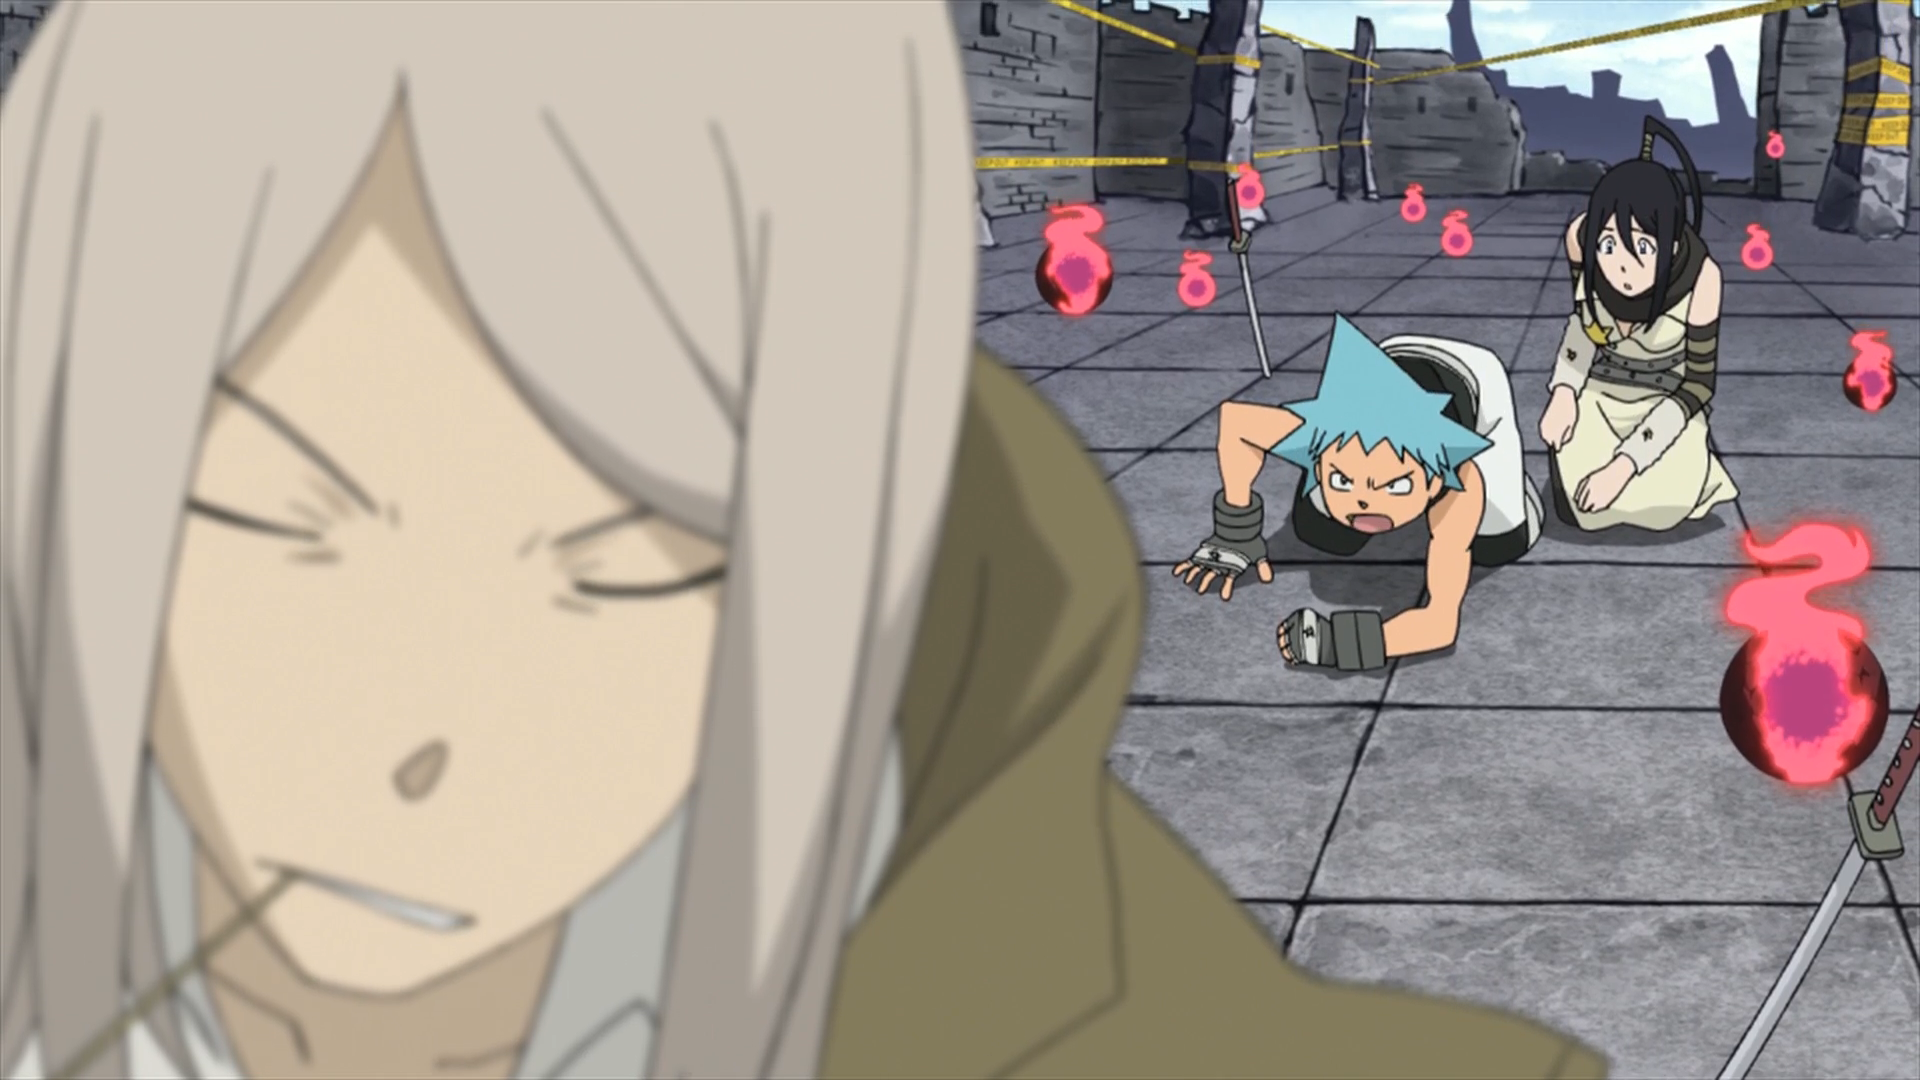 Soul Eater Episode 2 HD - Black Star refuses to stop.png - Stop PNG HD